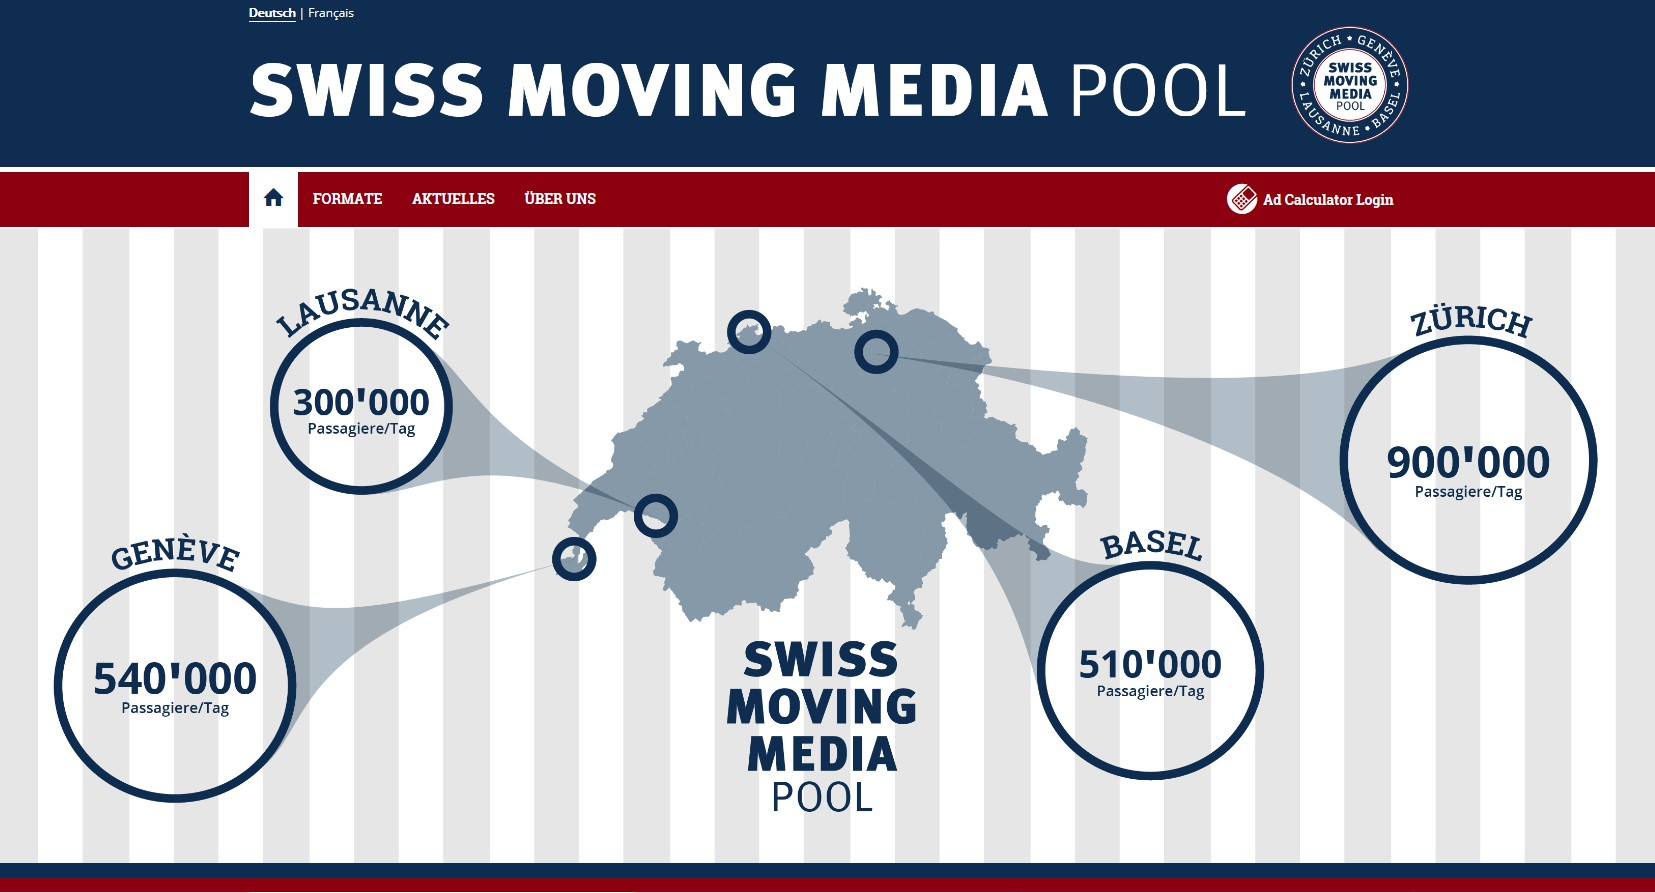 Launch of the Swiss Moving Media Pool!